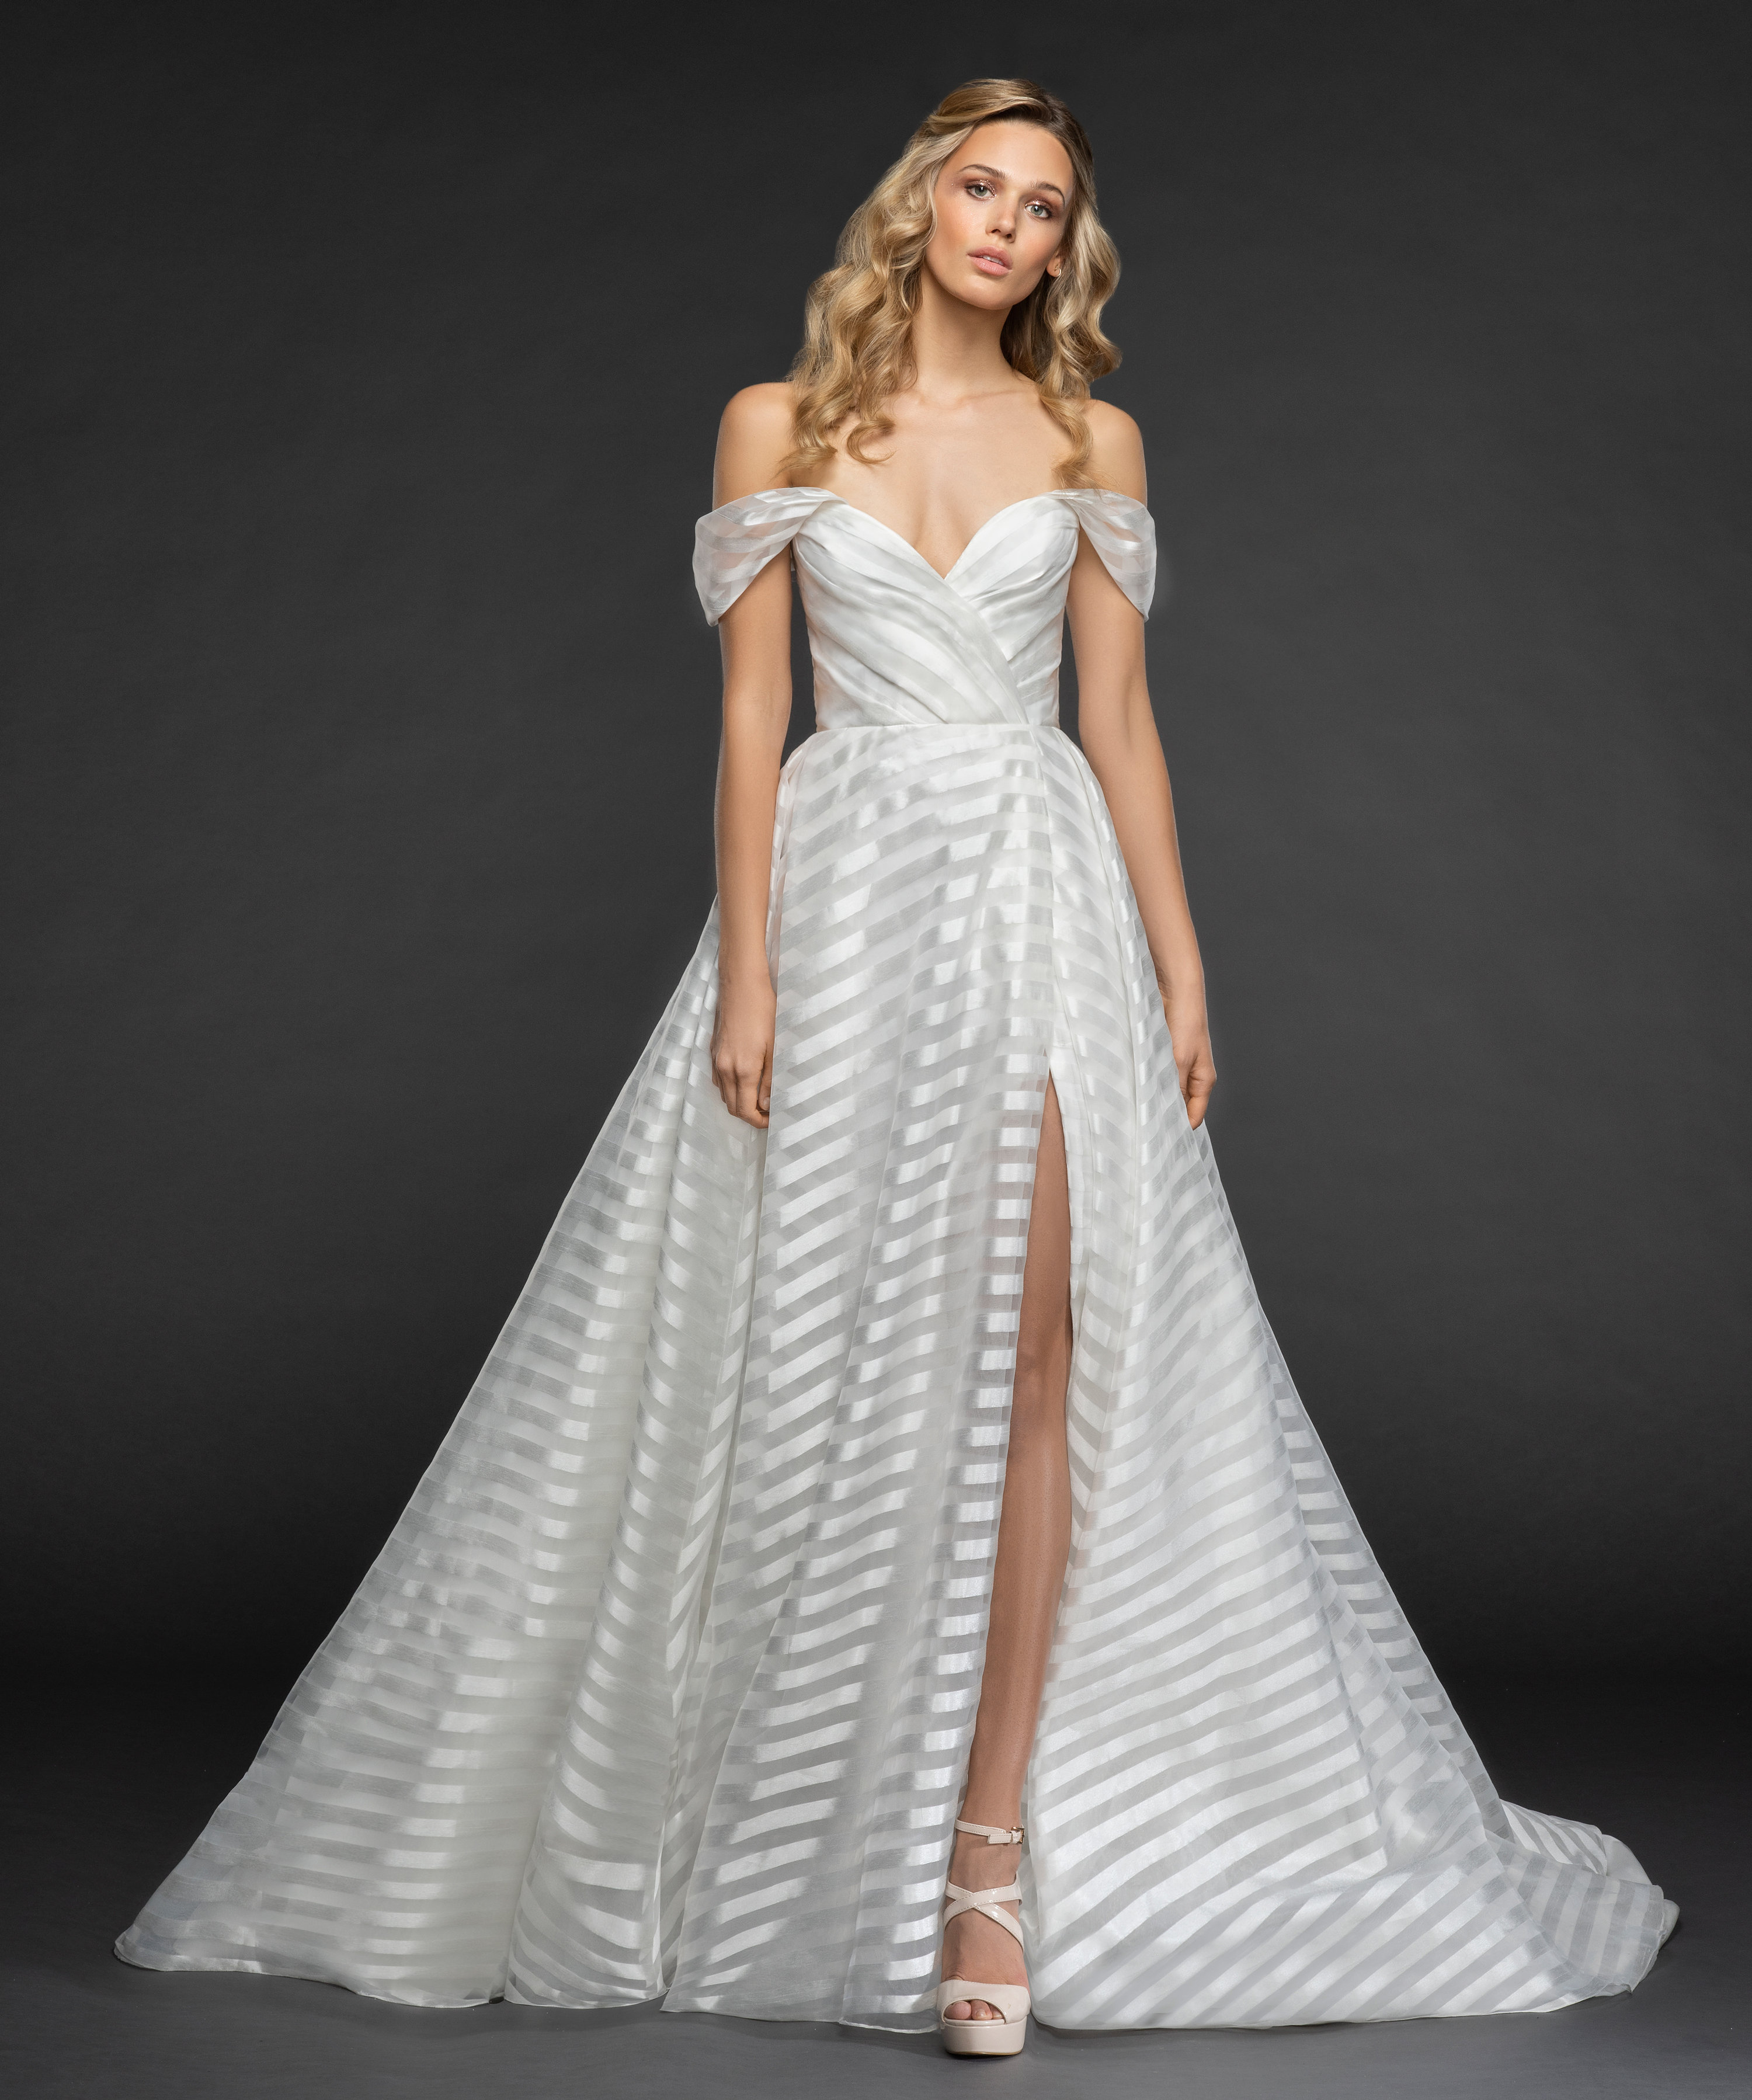 Striped Organza Off The Shoulder Ball Gown Wedding Dress